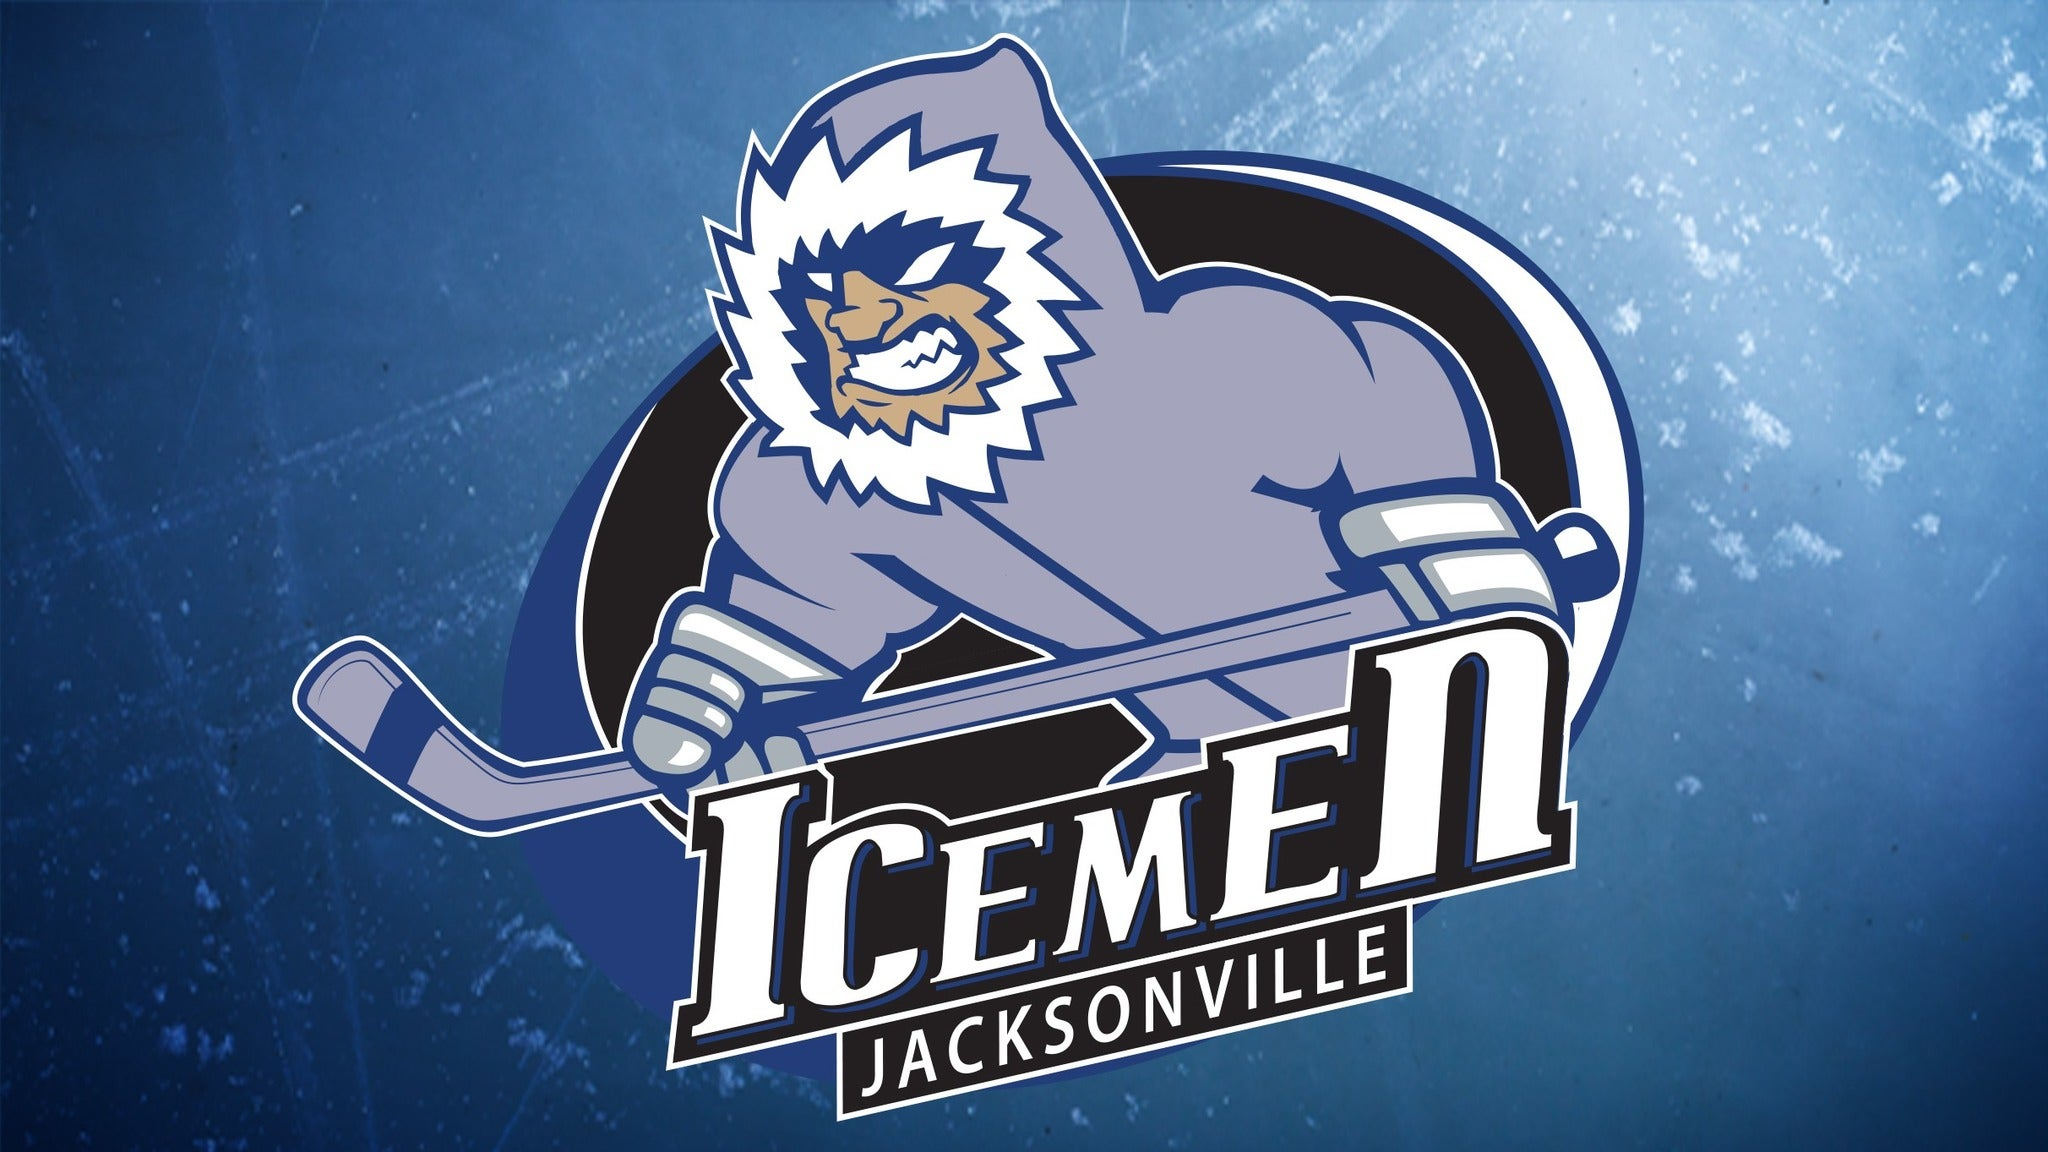 Jacksonville Icemen vs. Atlanta Gladiators